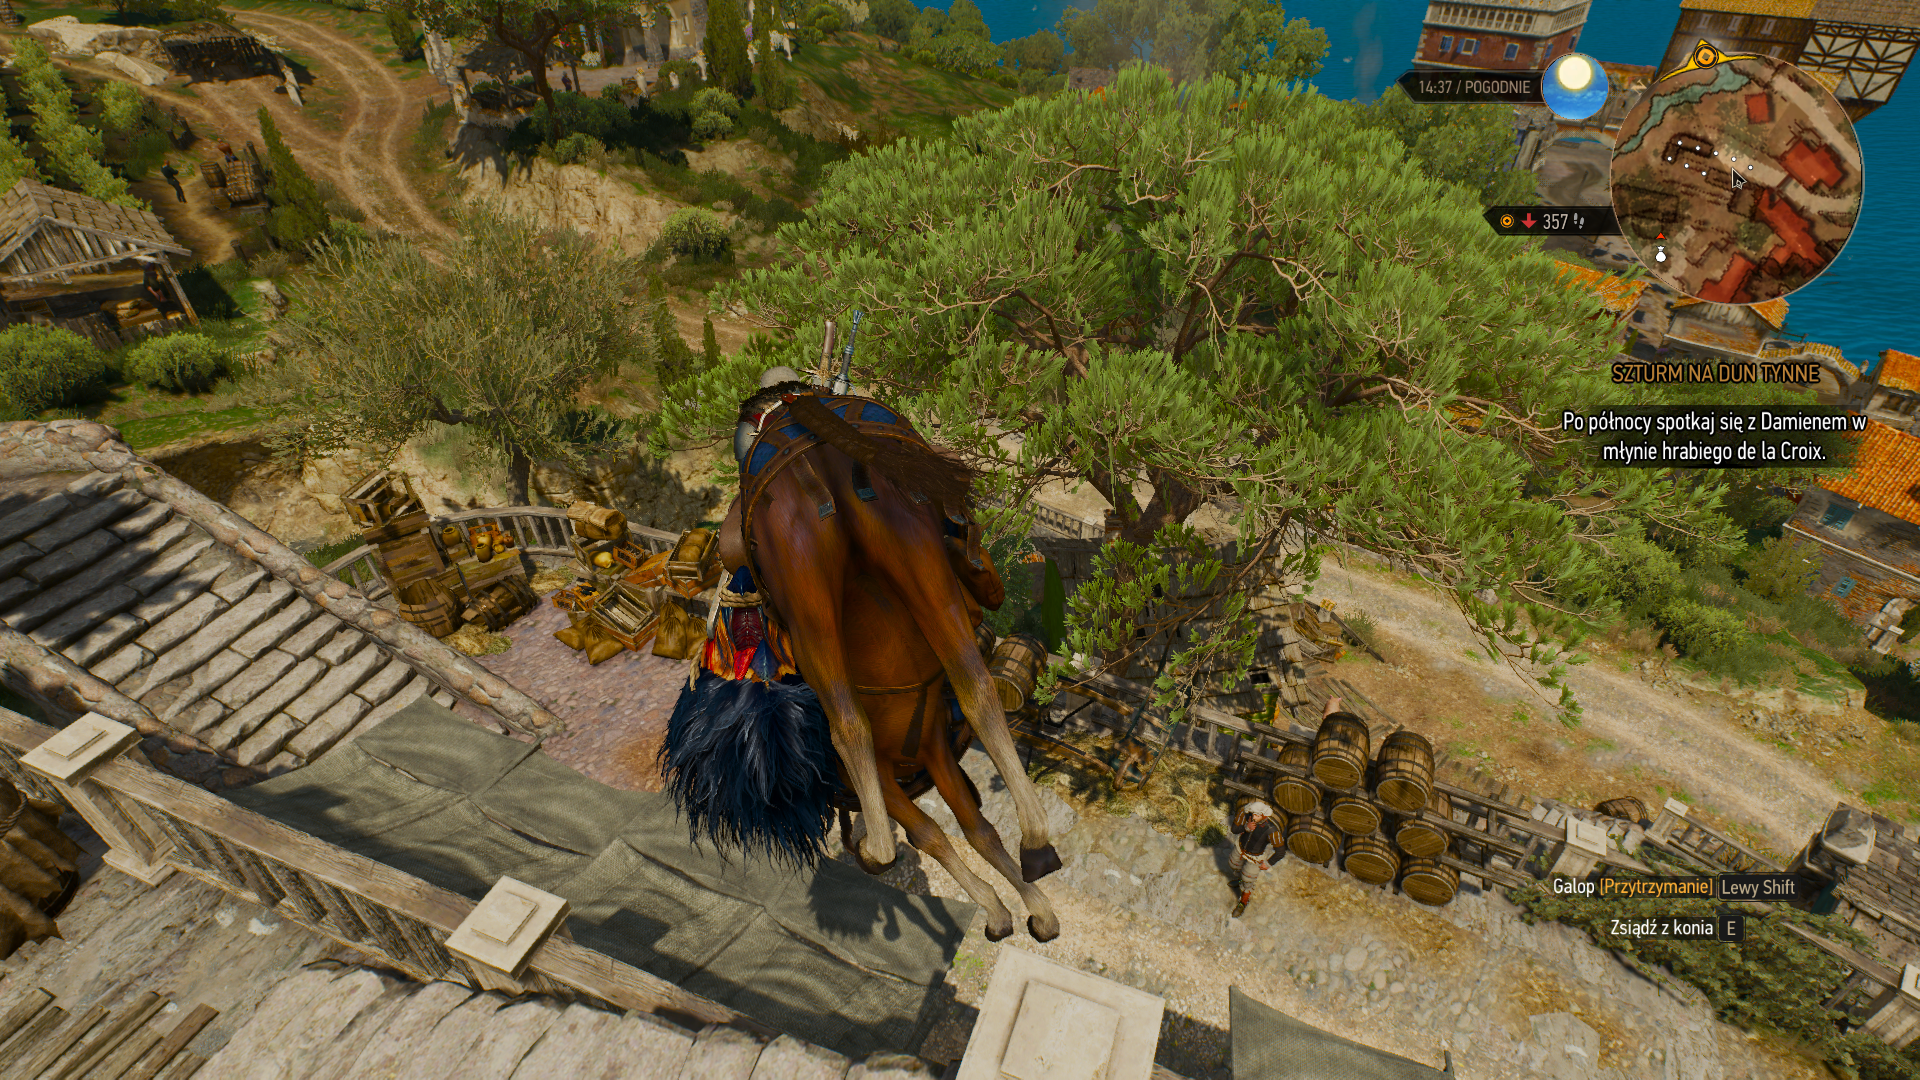 The Witcher 3 29.12.2018 18_46_59.png - Witcher 3: Wild Hunt, the